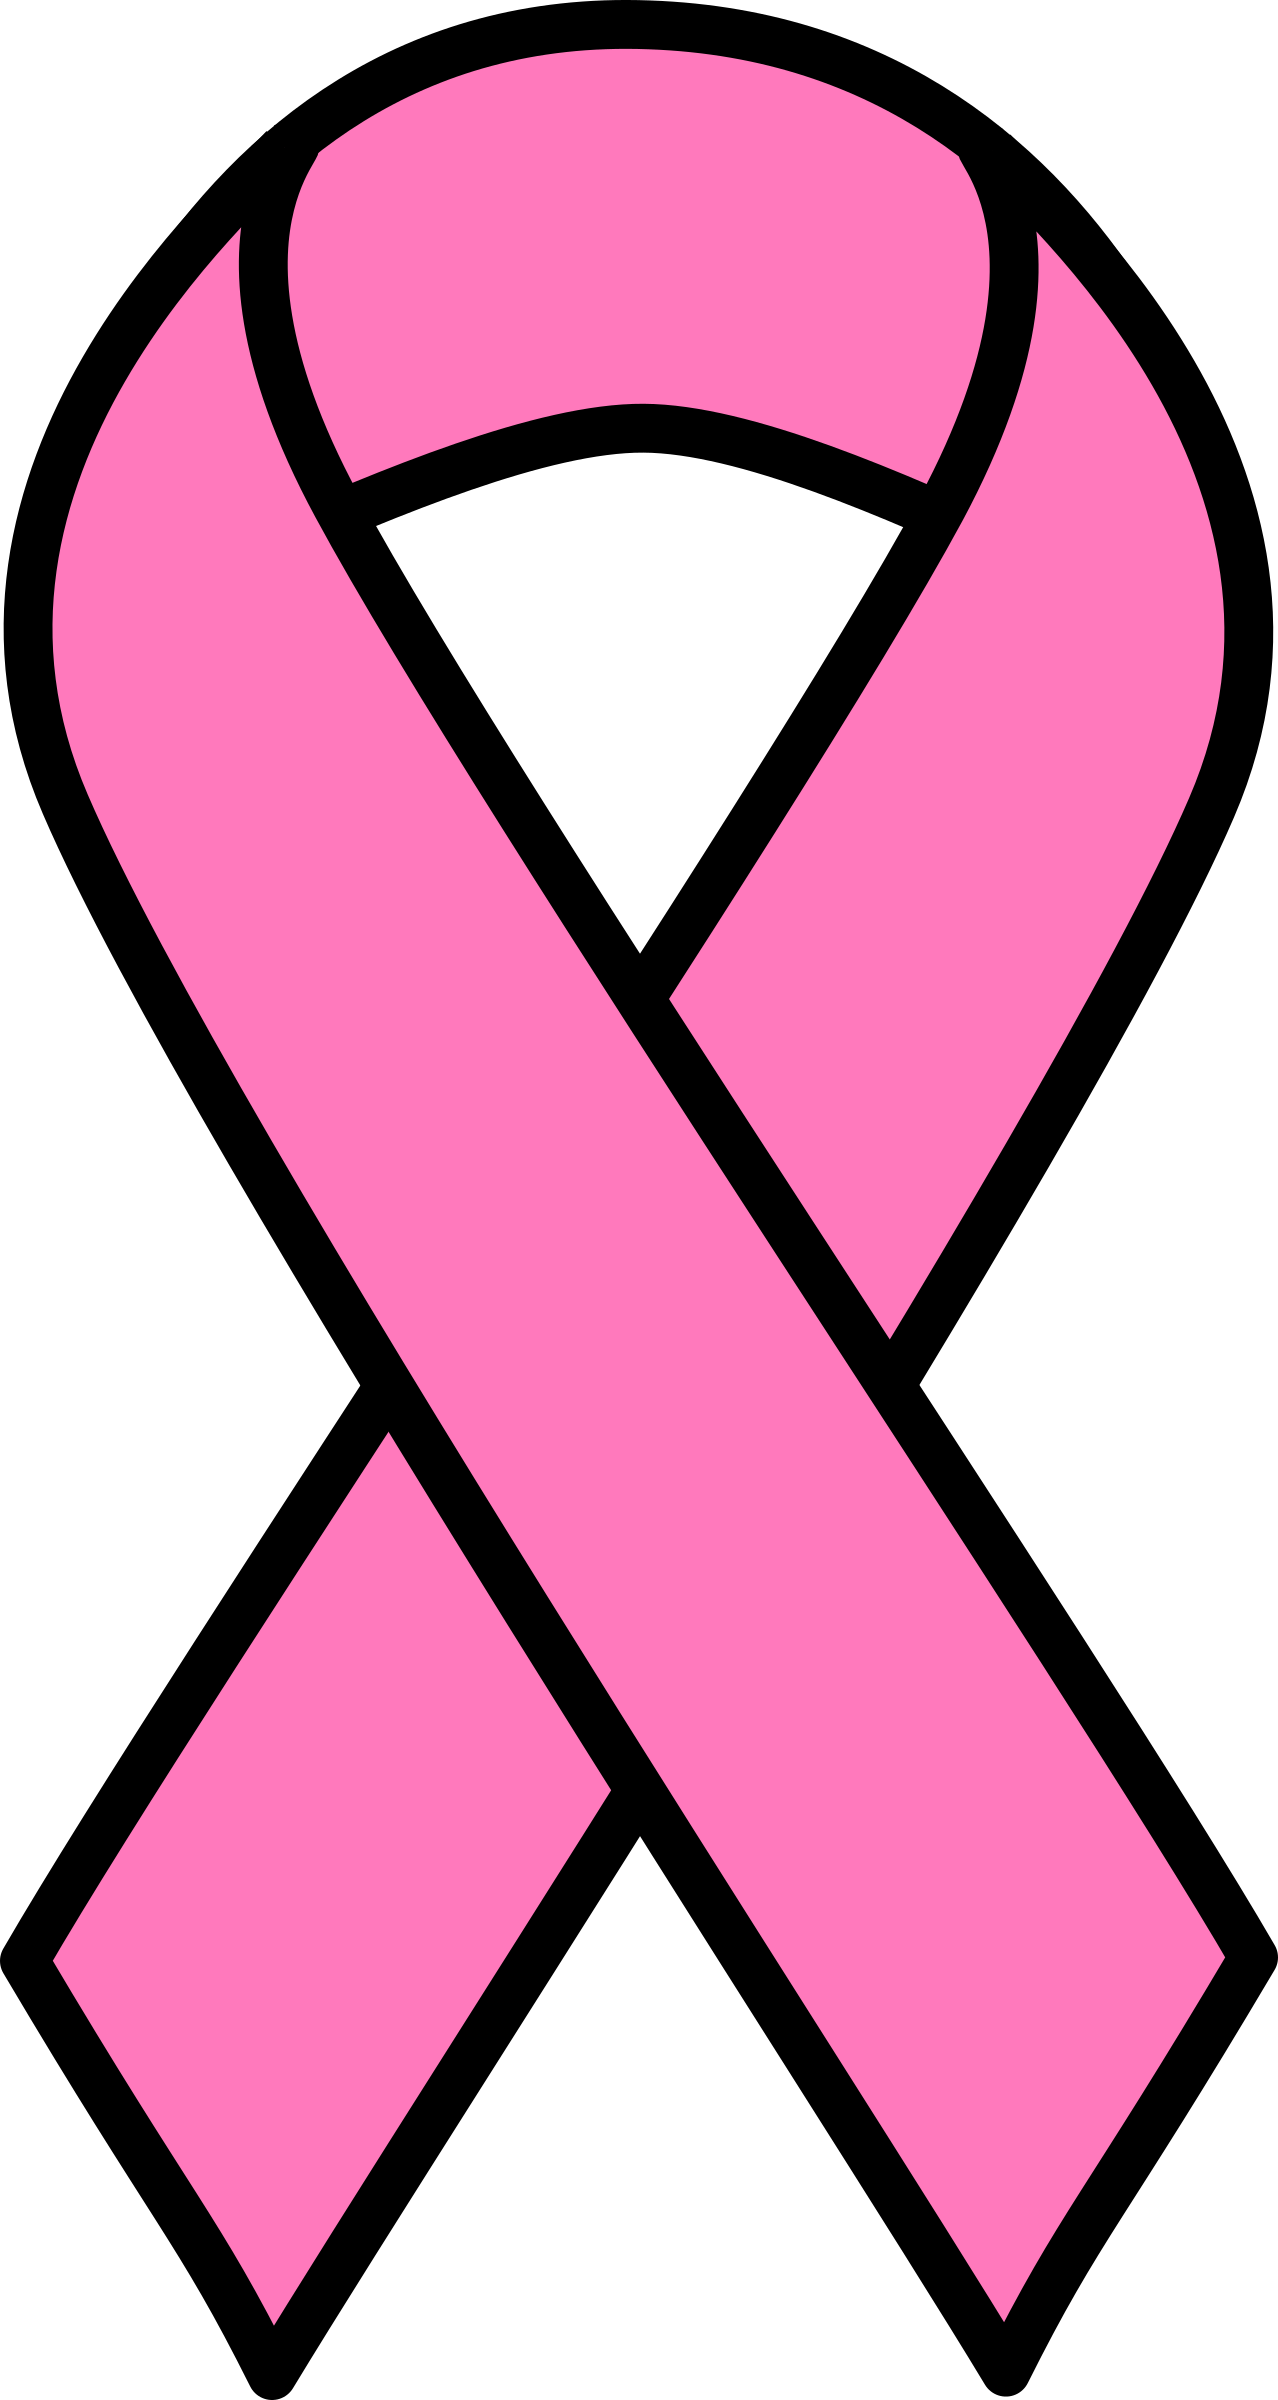 Awareness ribbon with crown clipart image free library Breast cancer awareness ribbon clip art 3 - Clipartix image free library